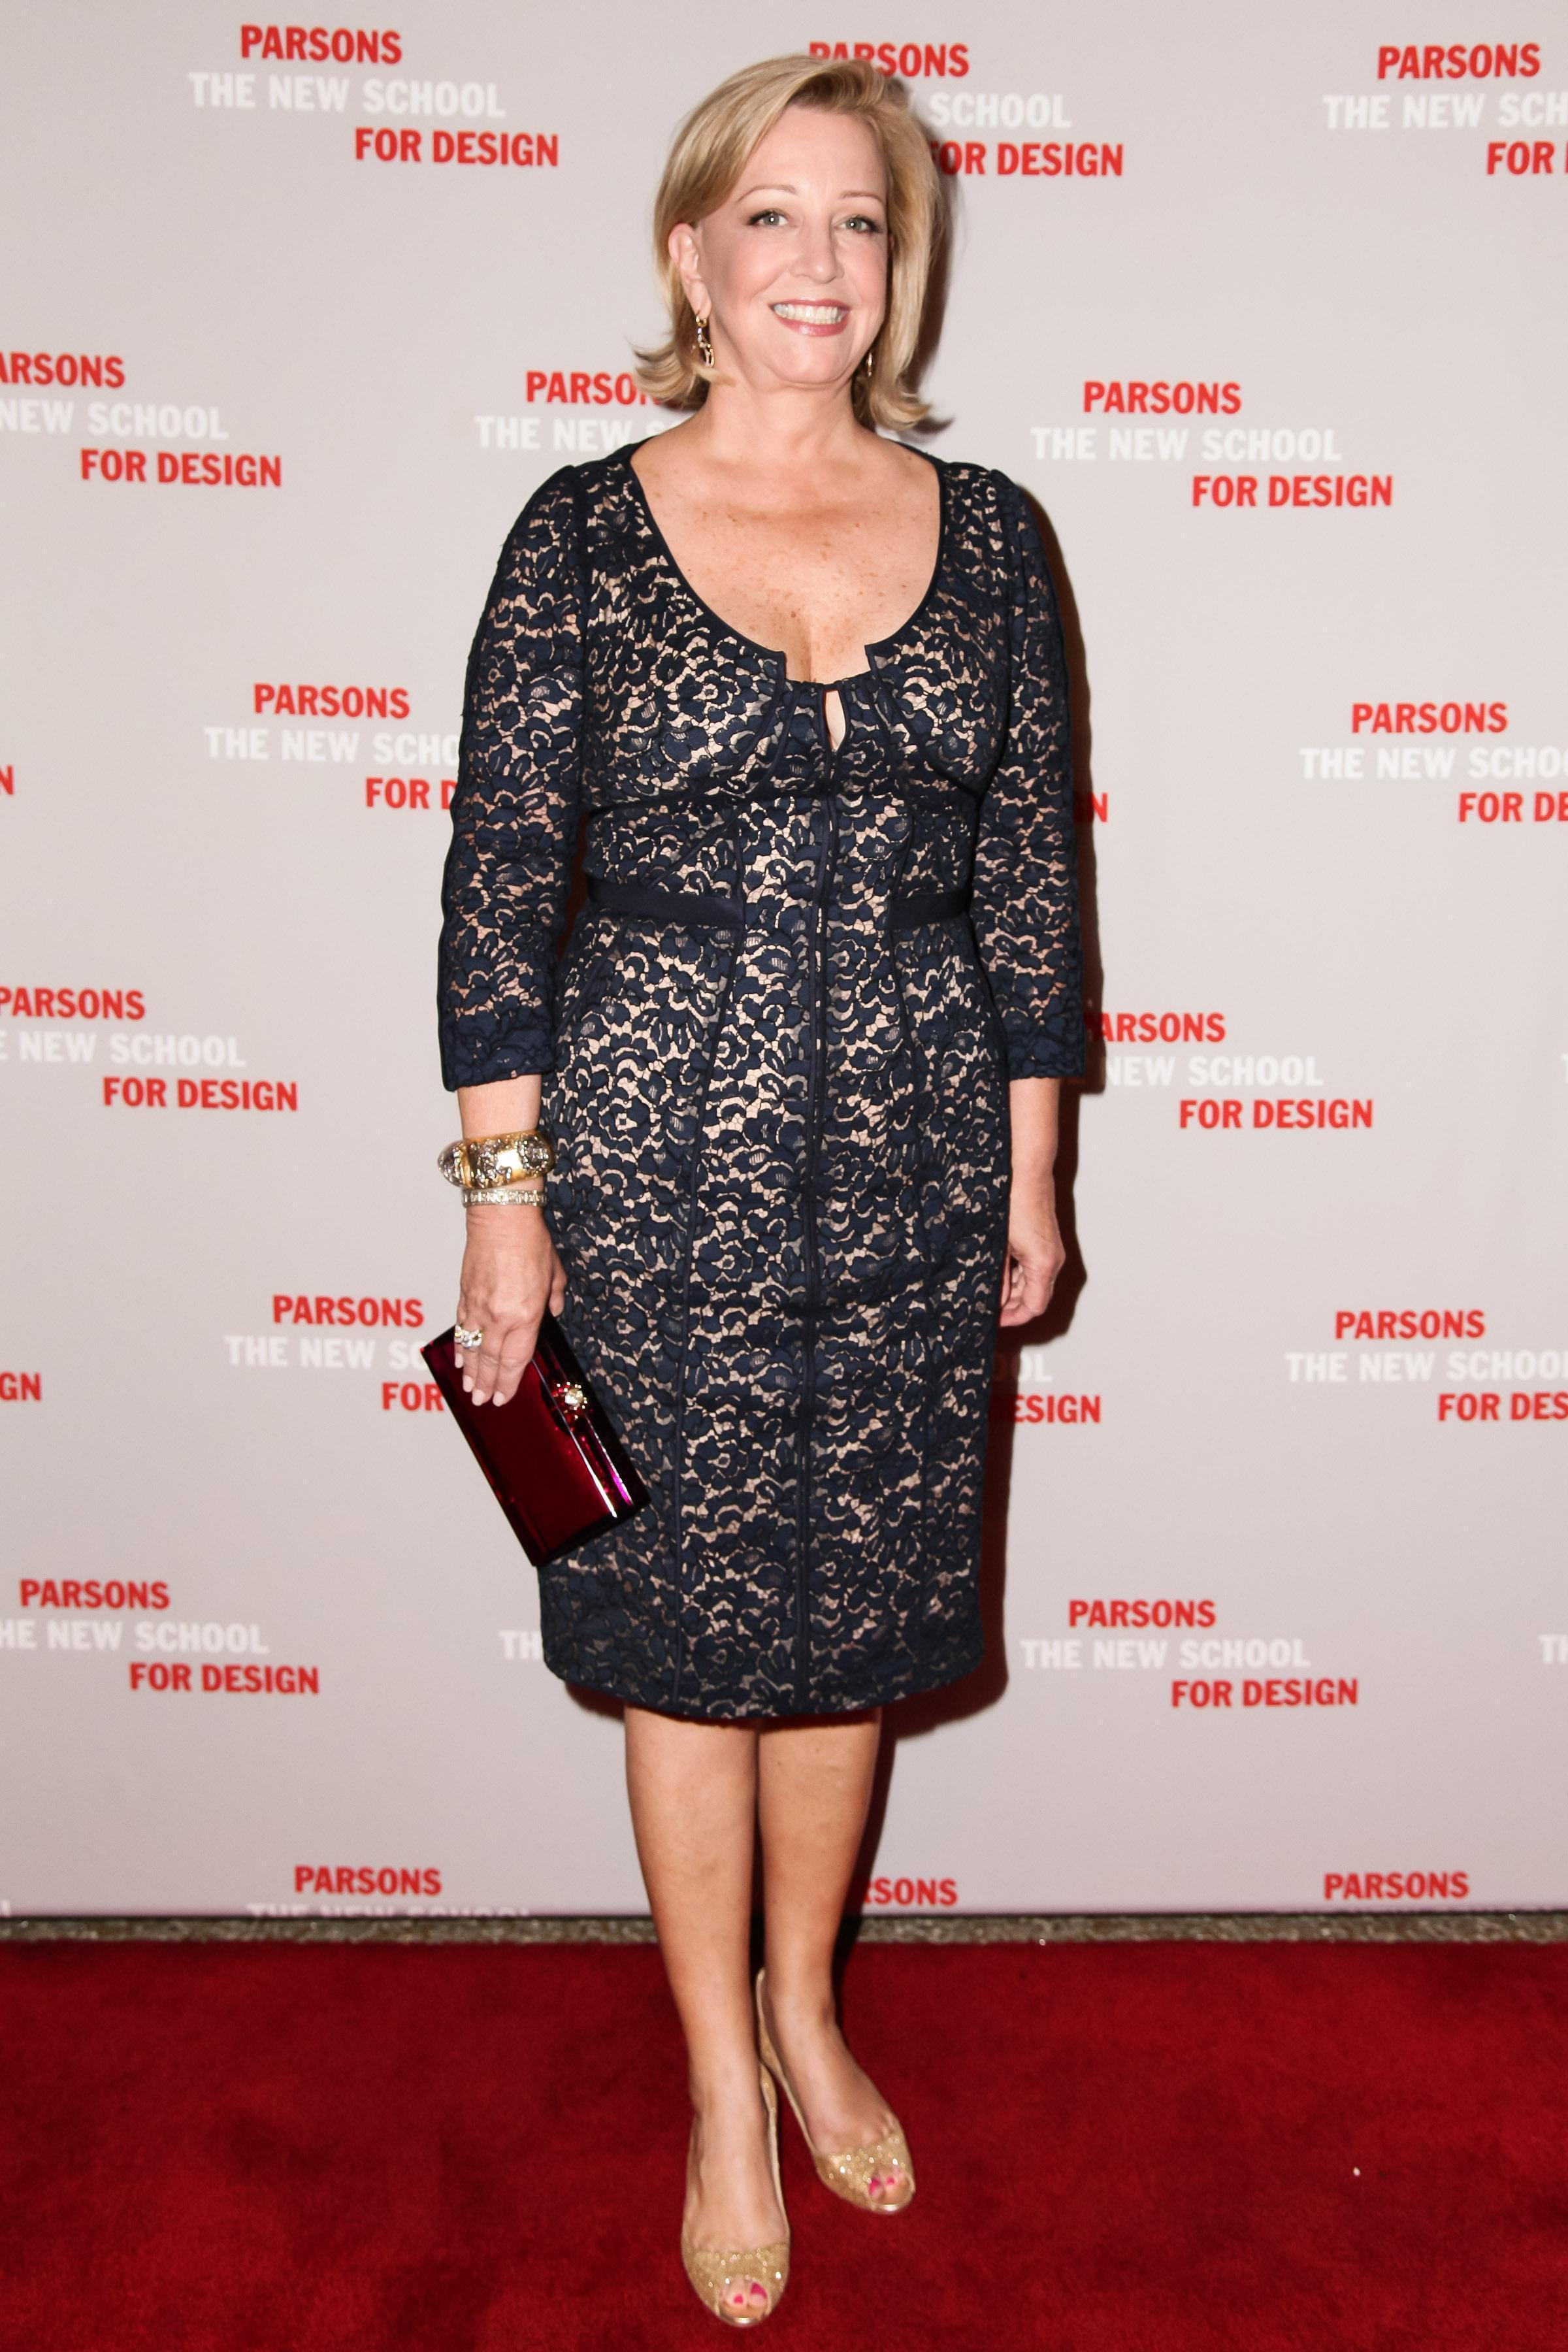 Bonnie BrooksParsons Fashion Benefit Honoring Bonnie Brooks and Proenza Schouler, New York, USA - 22 May 2013